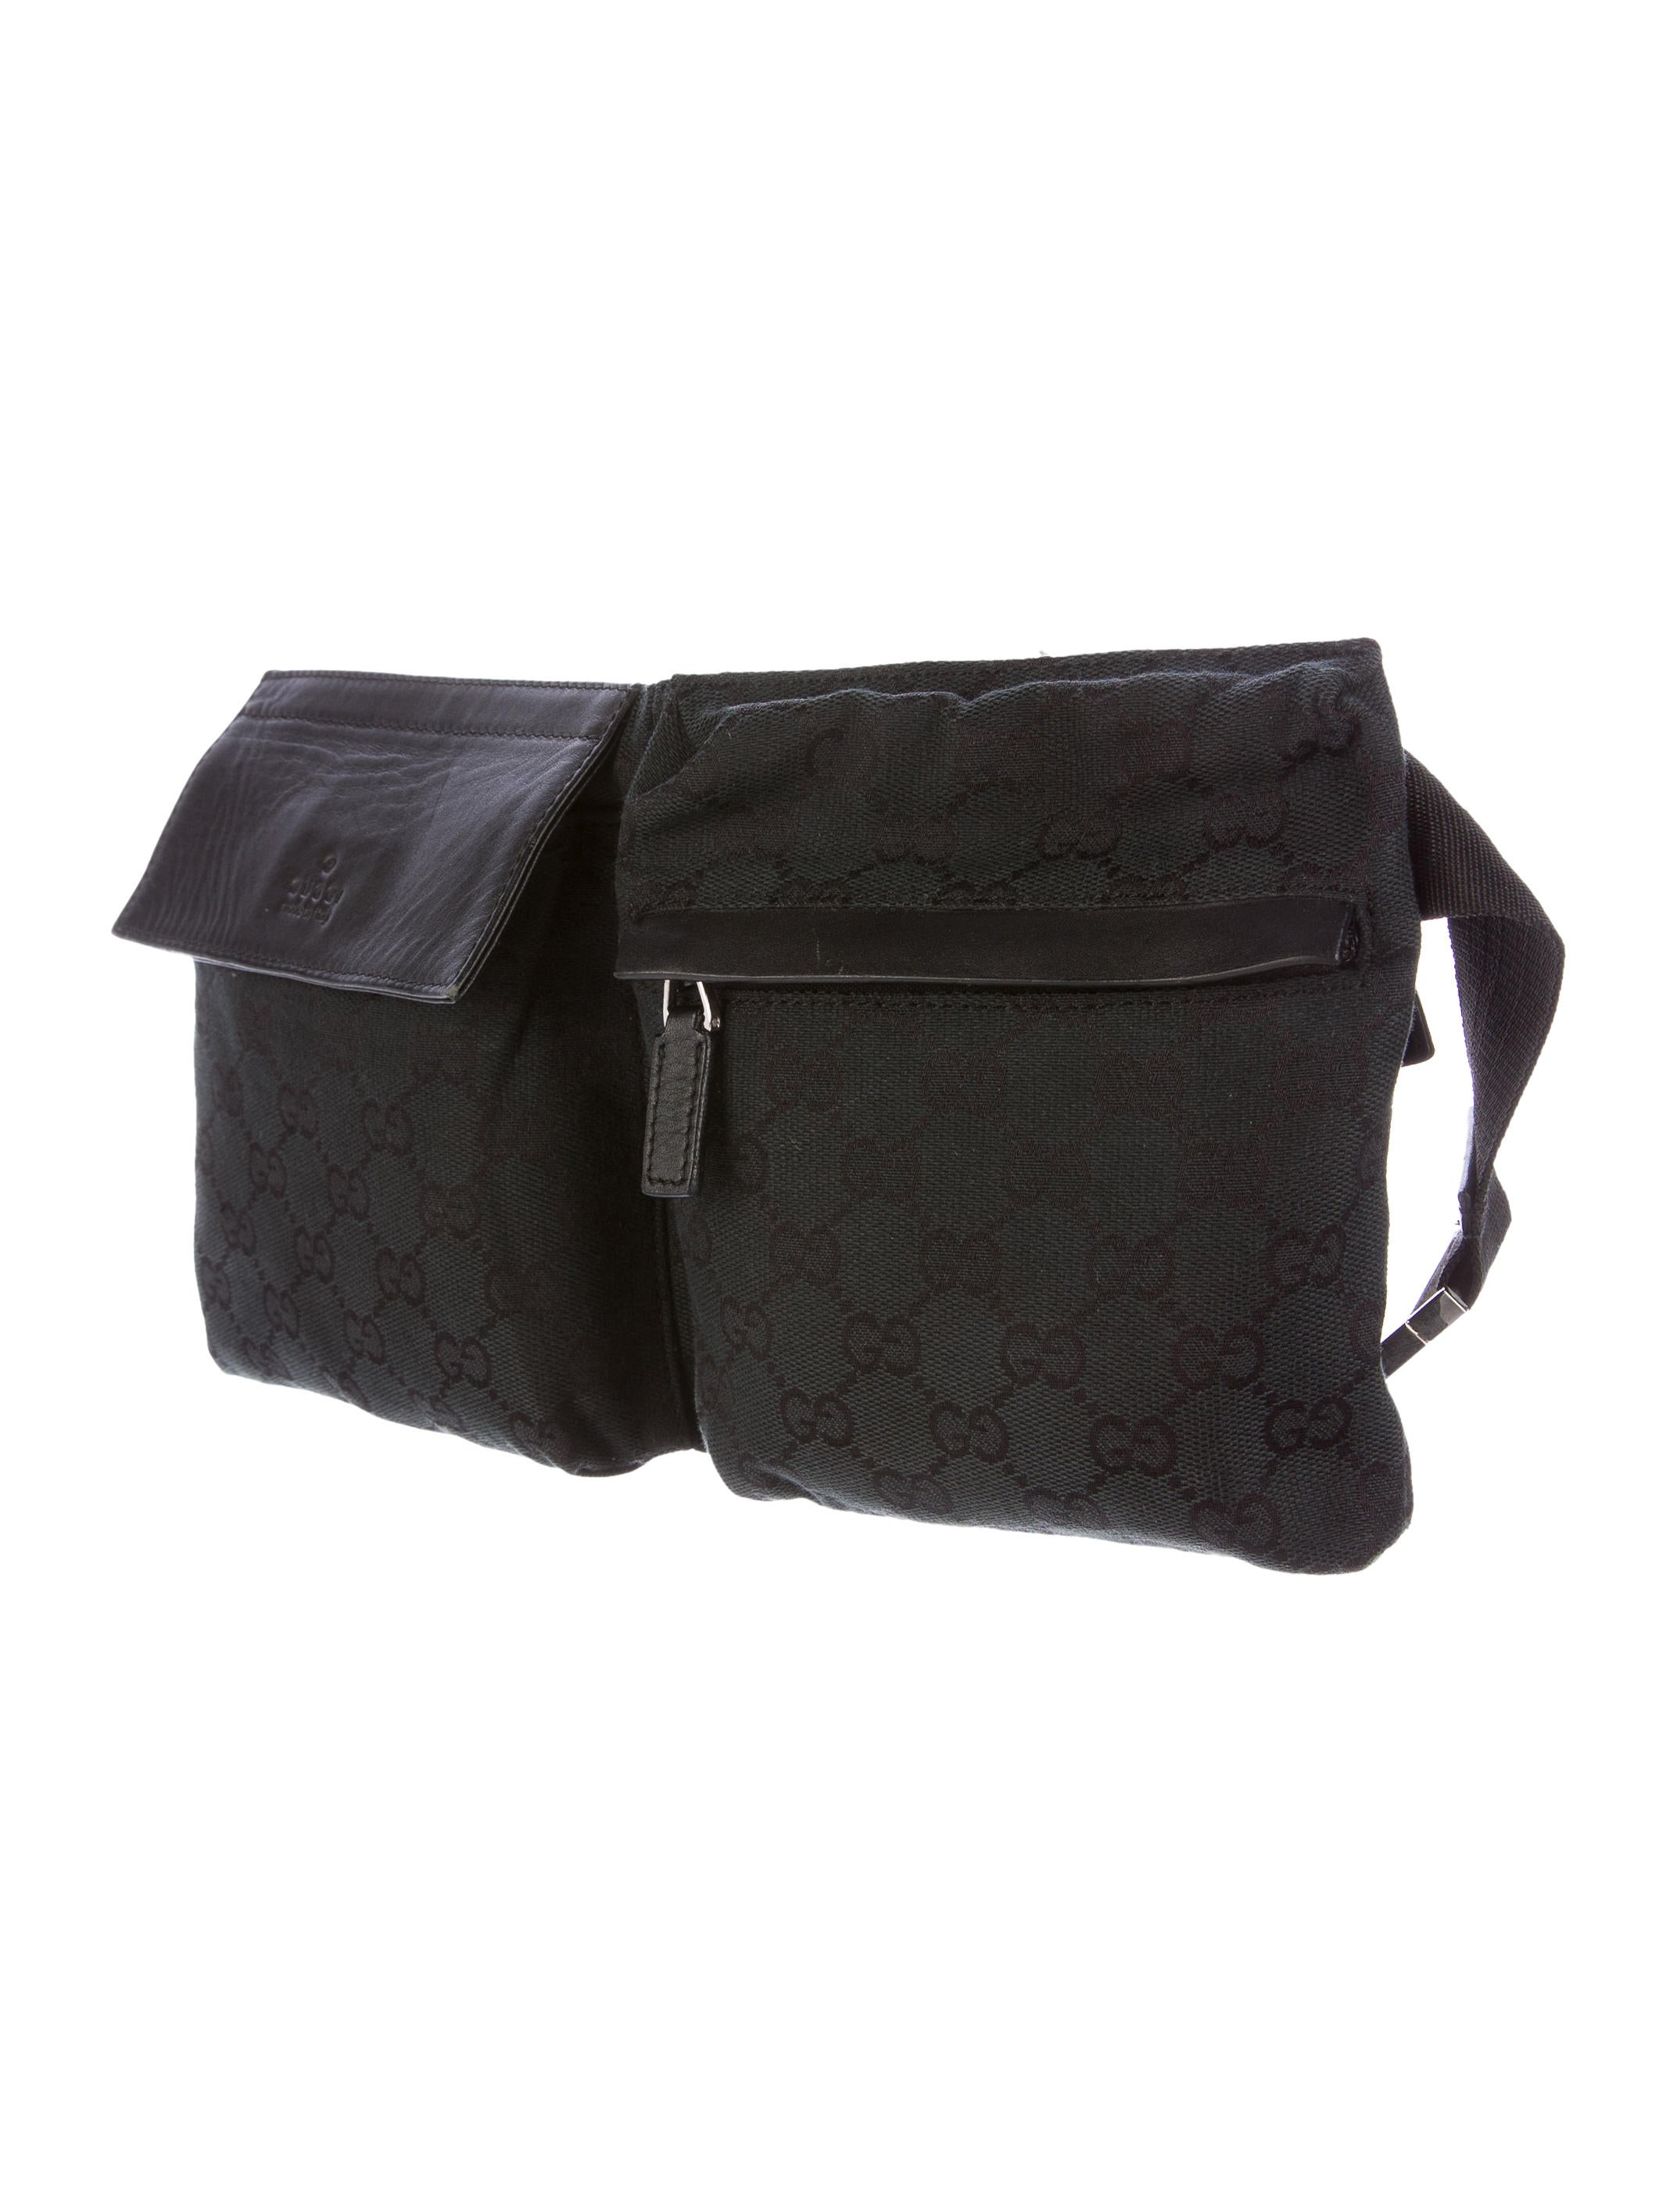 7bf64d5efc226f Gucci Waist Bag Men   Stanford Center for Opportunity Policy in ...